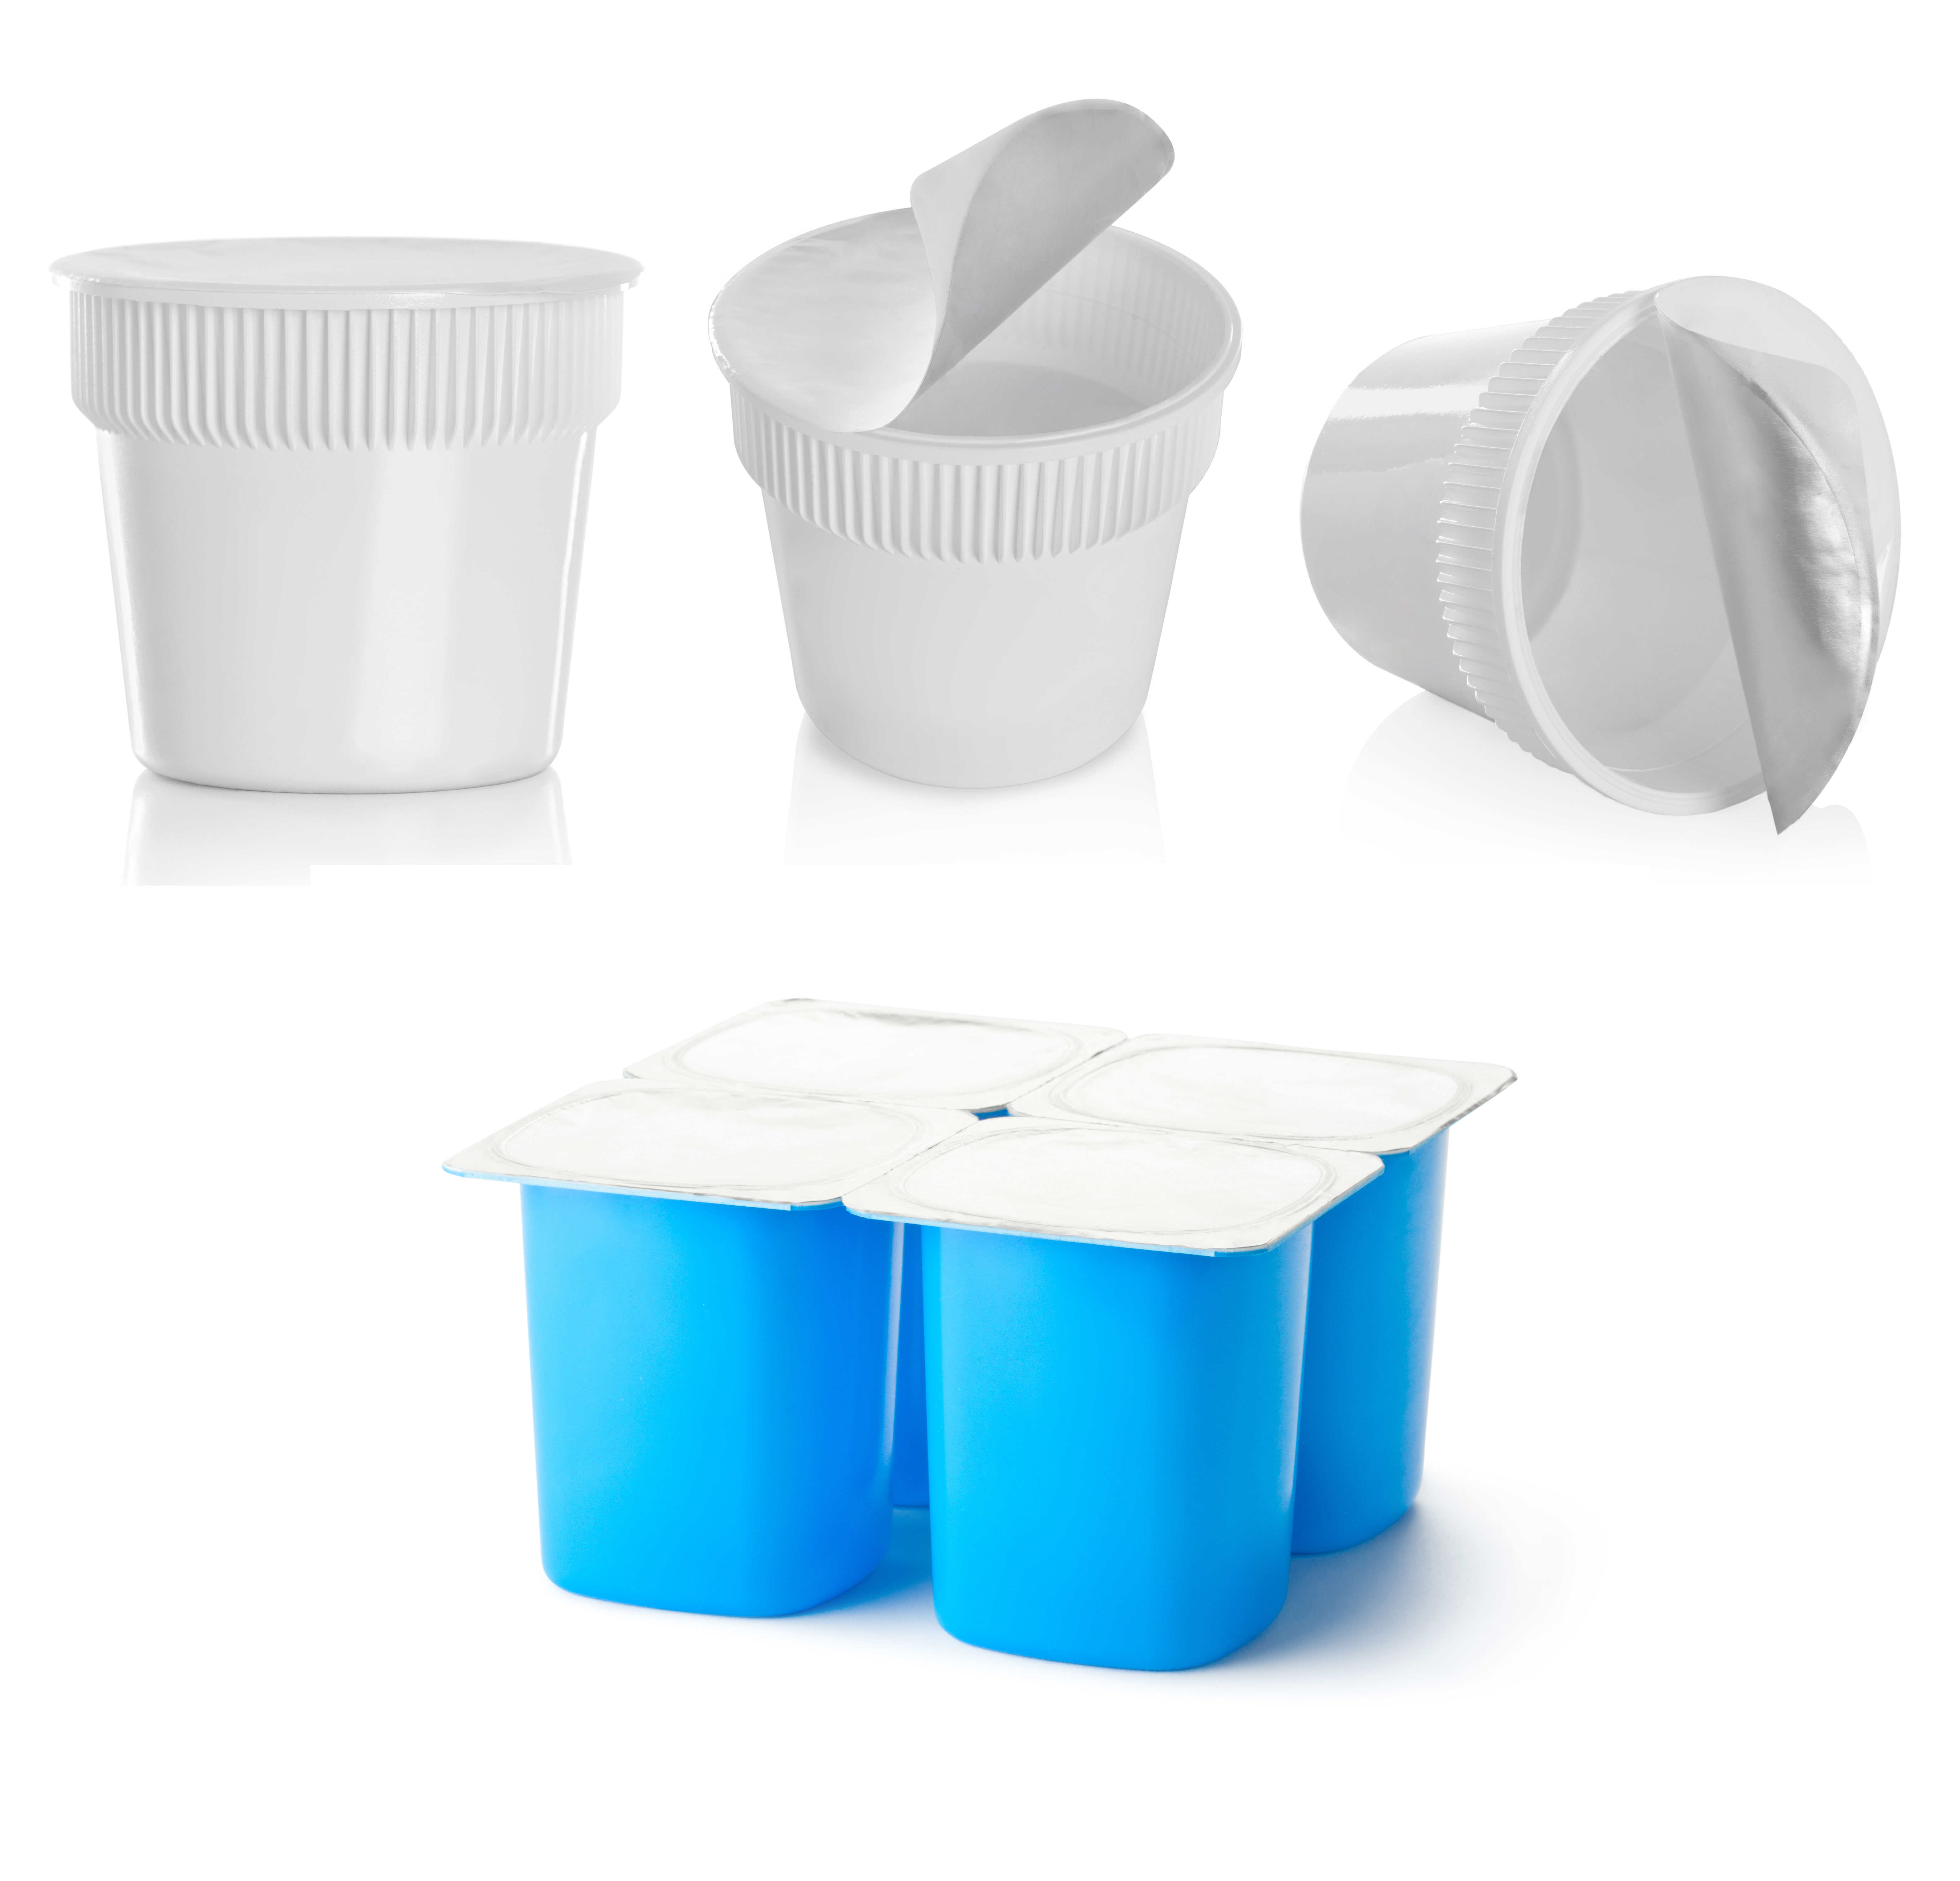 co-mingled recycling curbside pick-up plastic containers